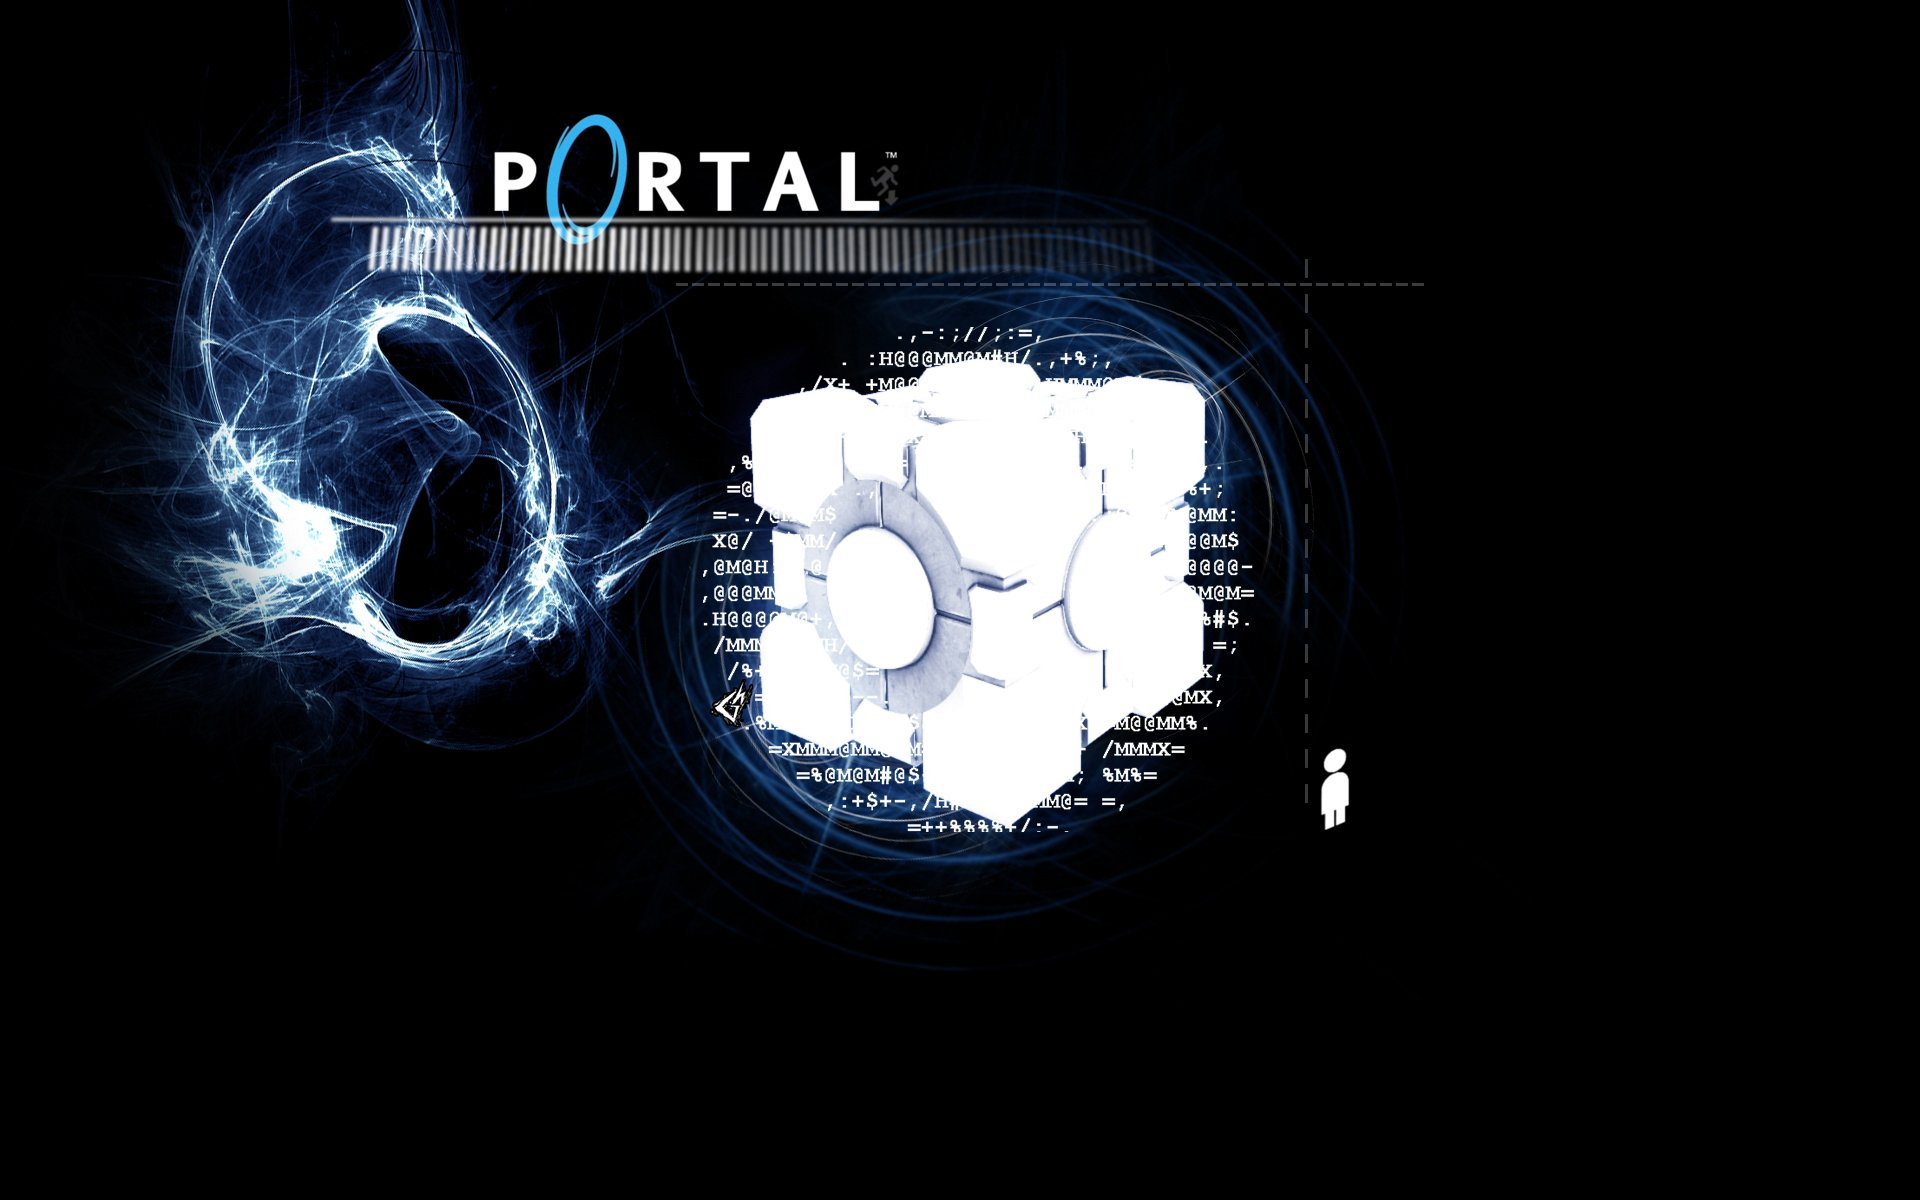 Portal (Video Game) clipart #8, Download drawings